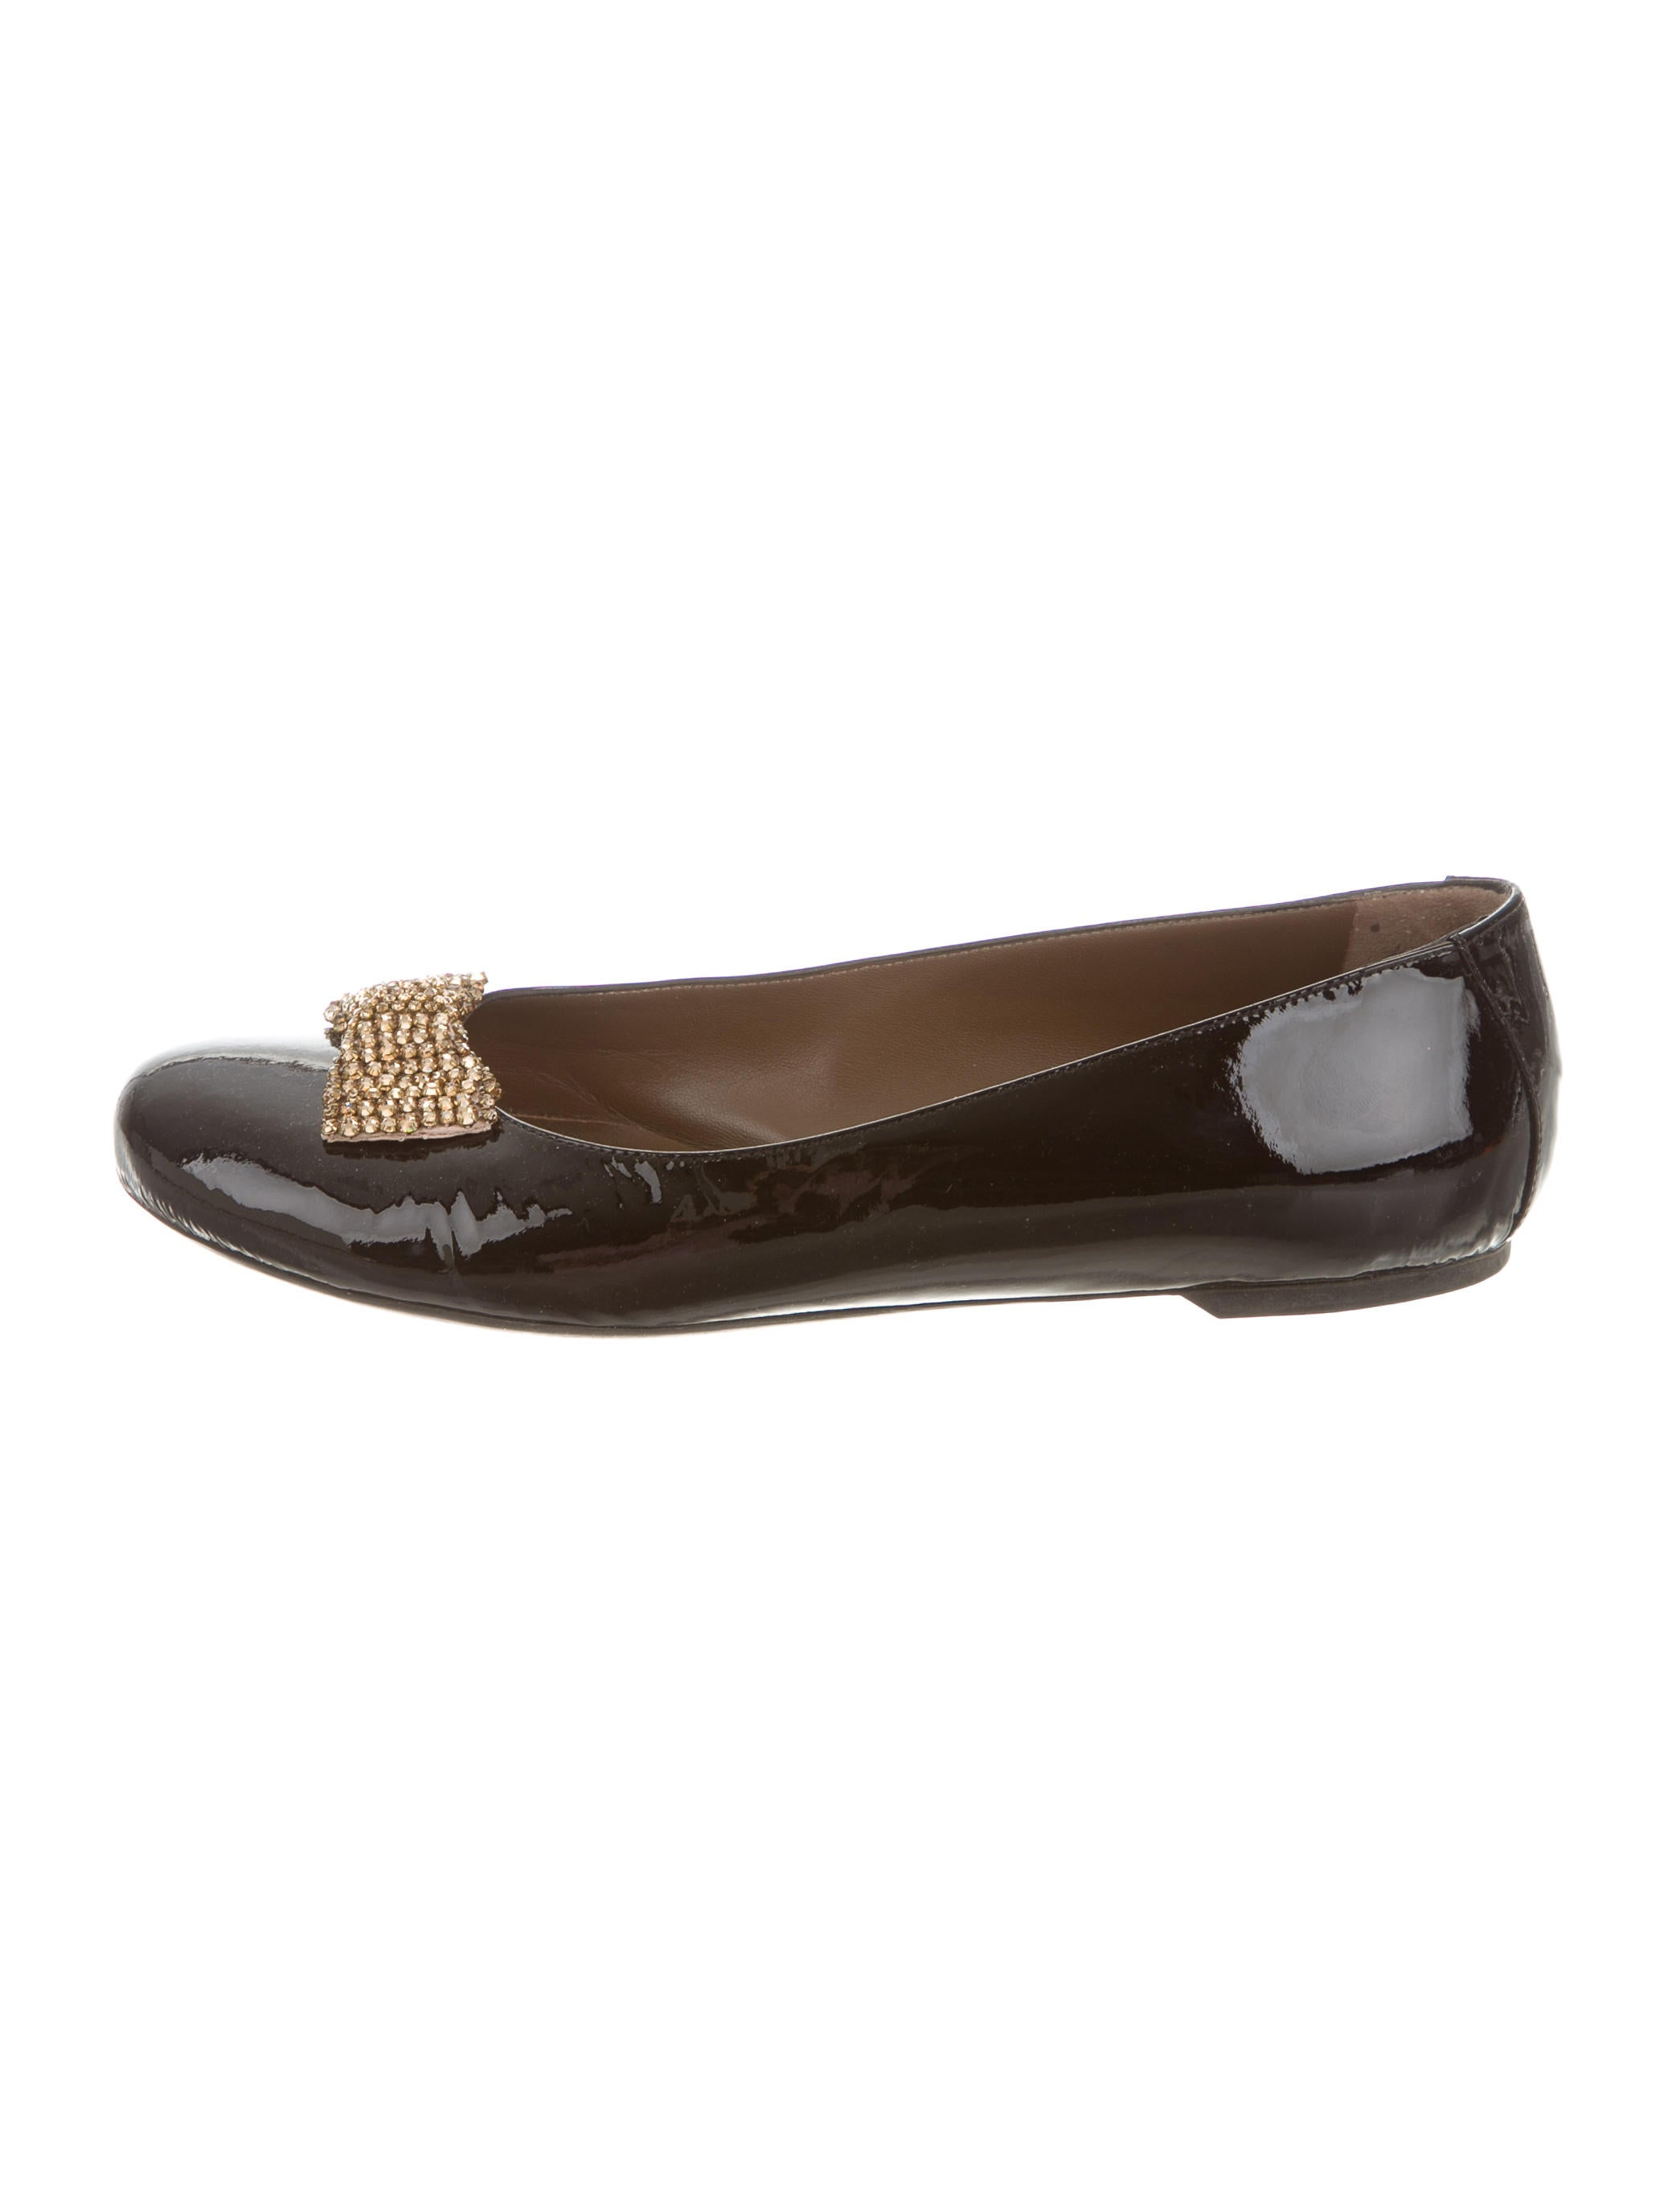 Marni Round-Toe Patent Leather Flats cheap choice cheap sale nicekicks tumblr sale online free shipping best place with mastercard cheap price Cgmlp6sPAT